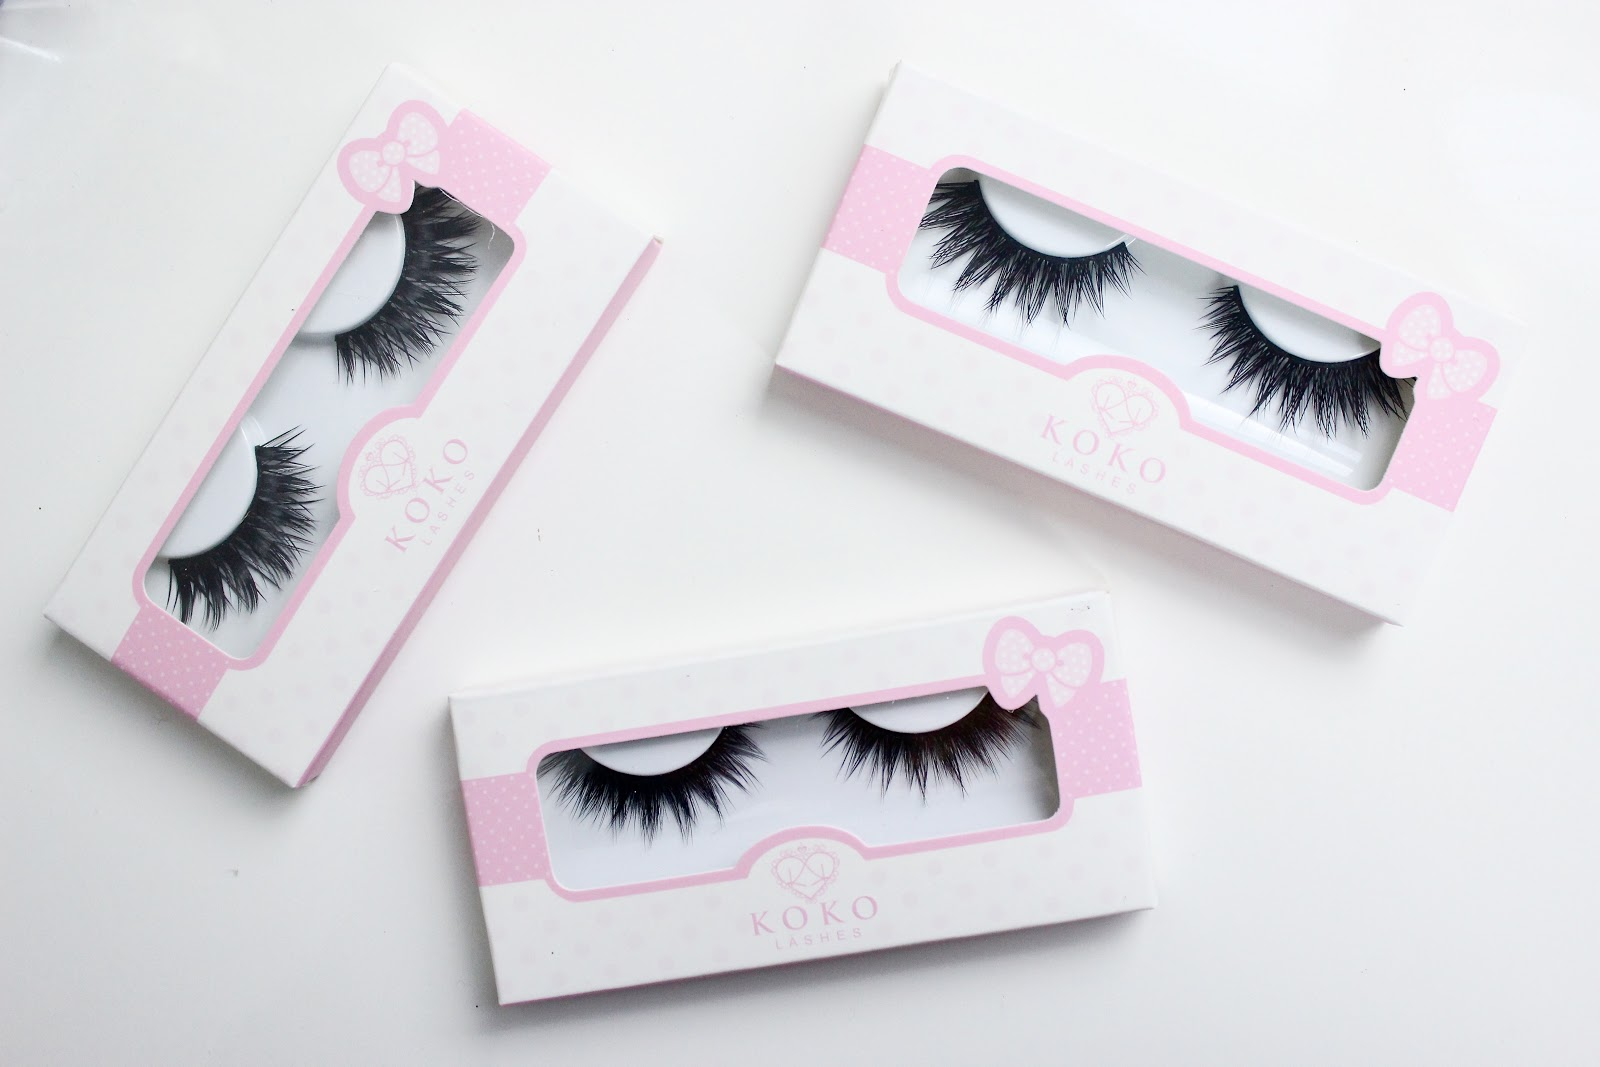 Koko Lashes Eyelash Haul